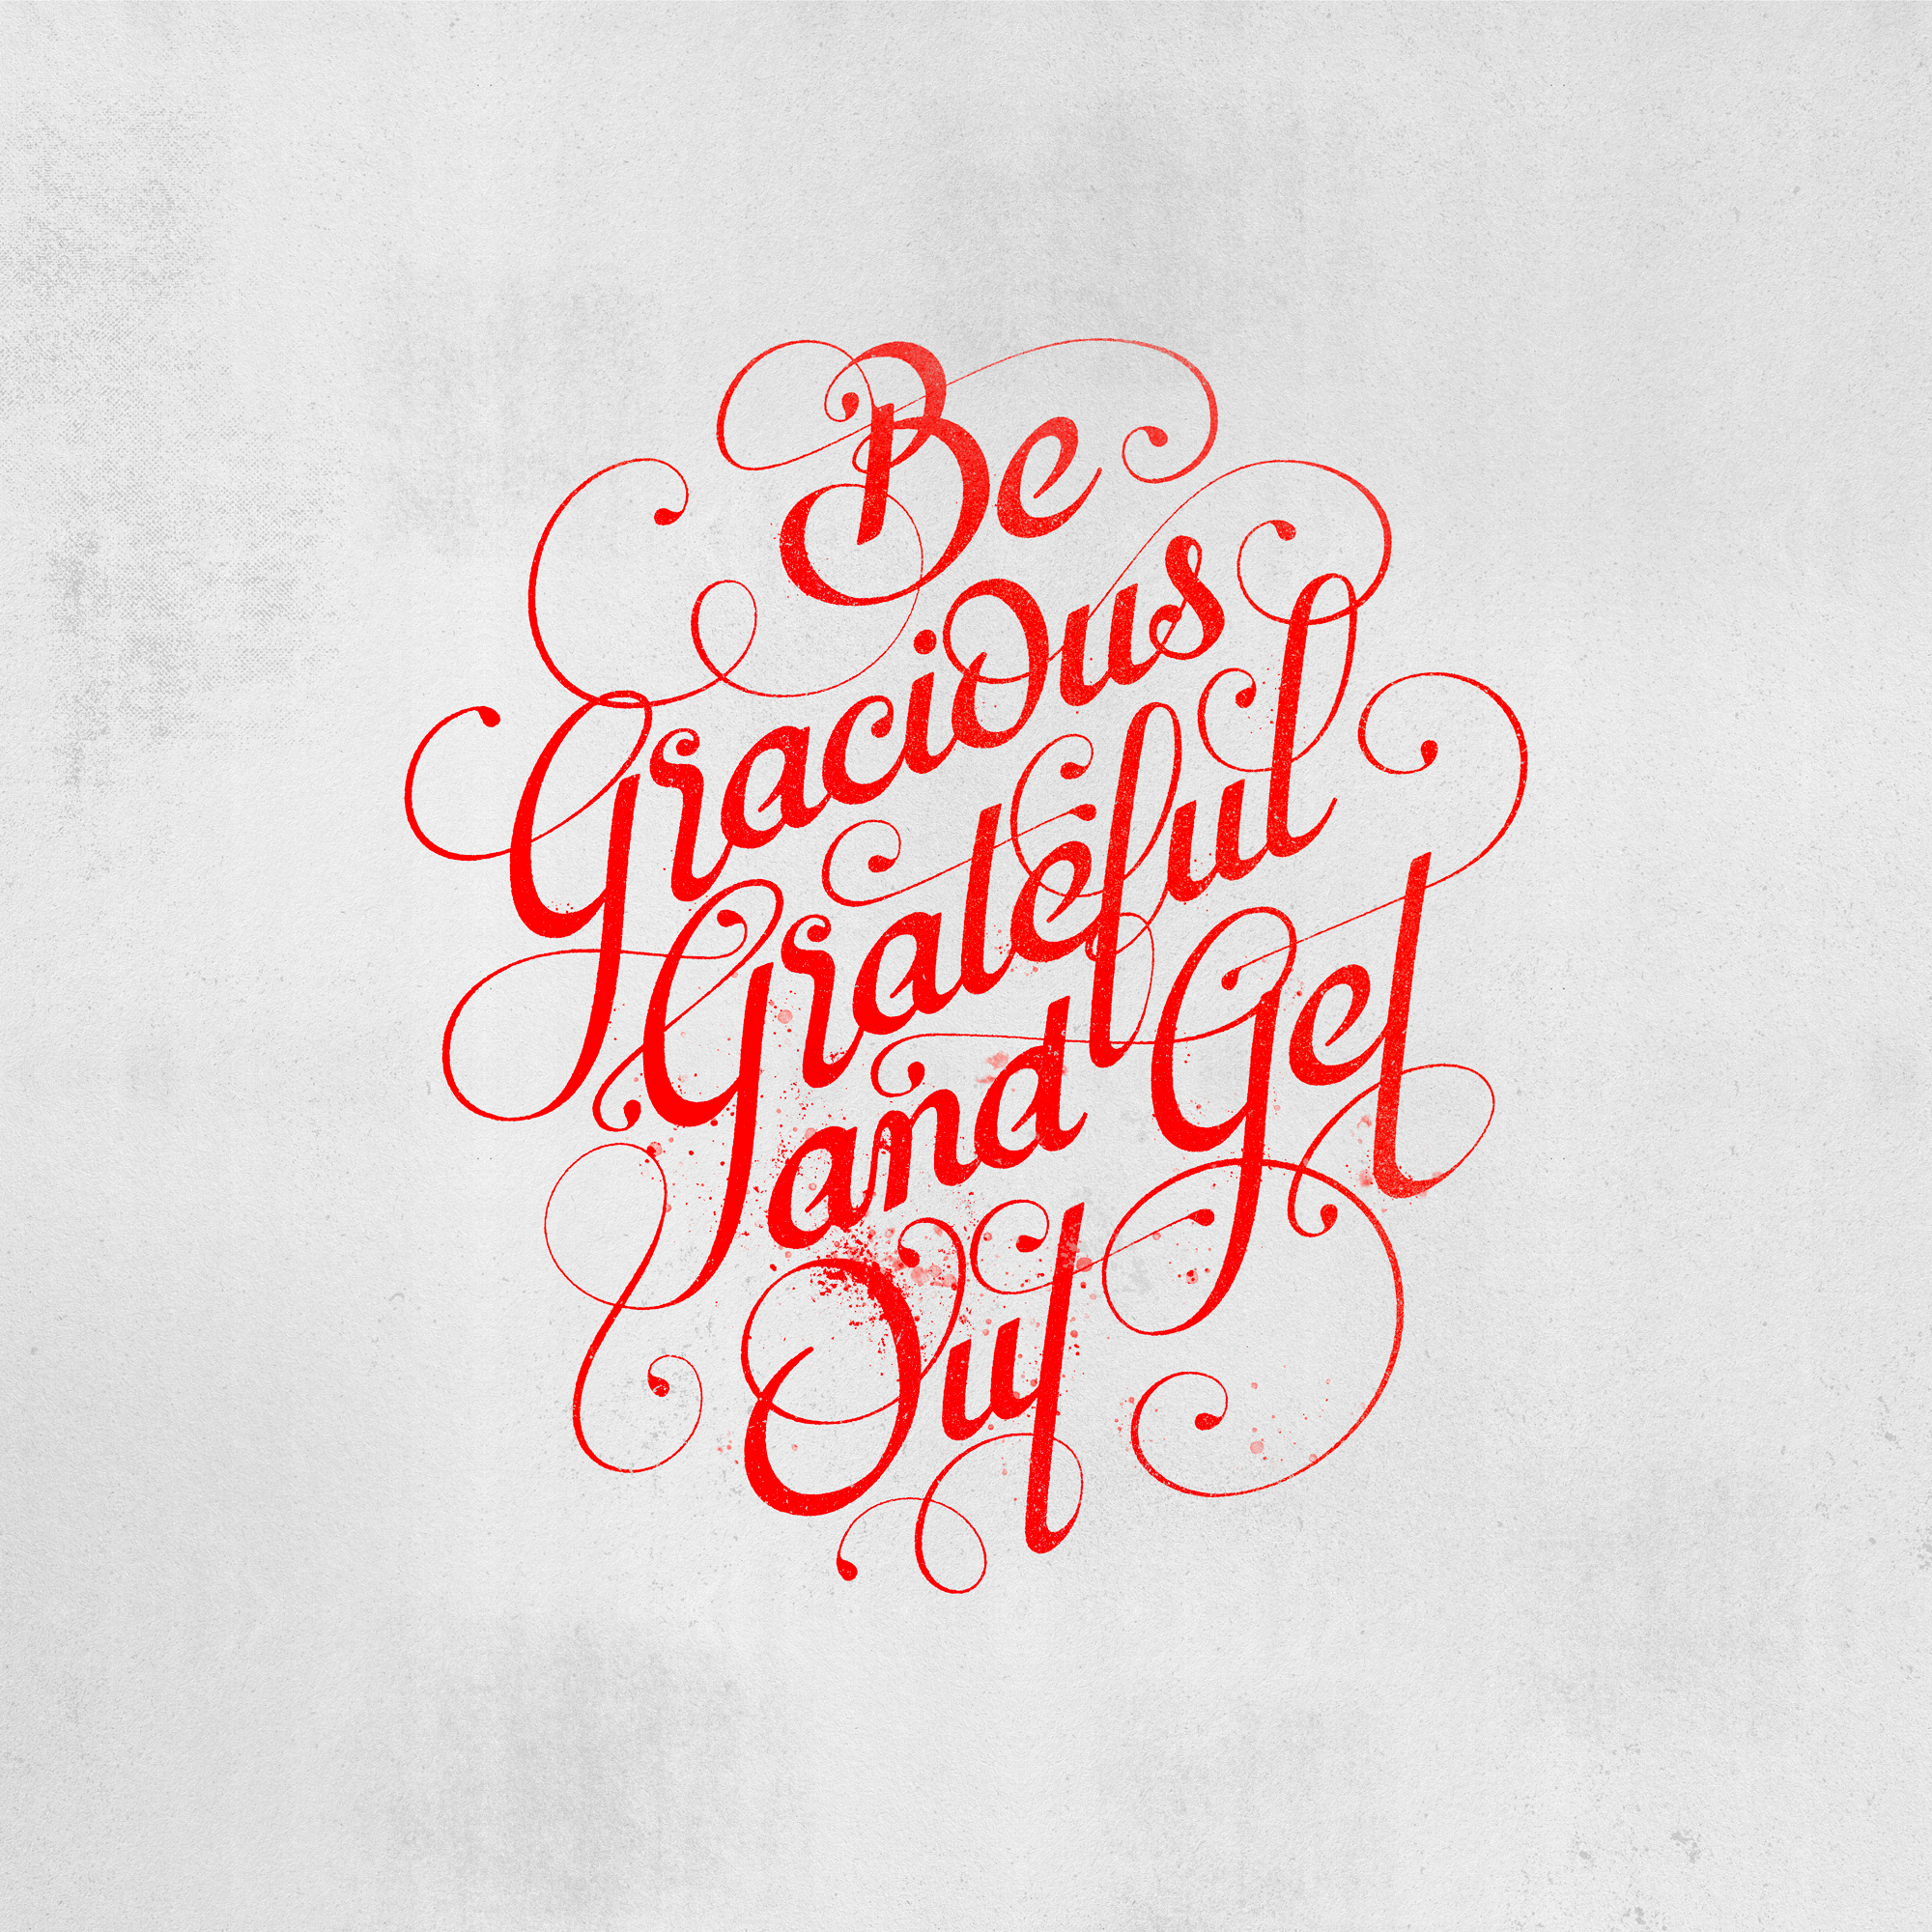 Be gracious grateful and get out